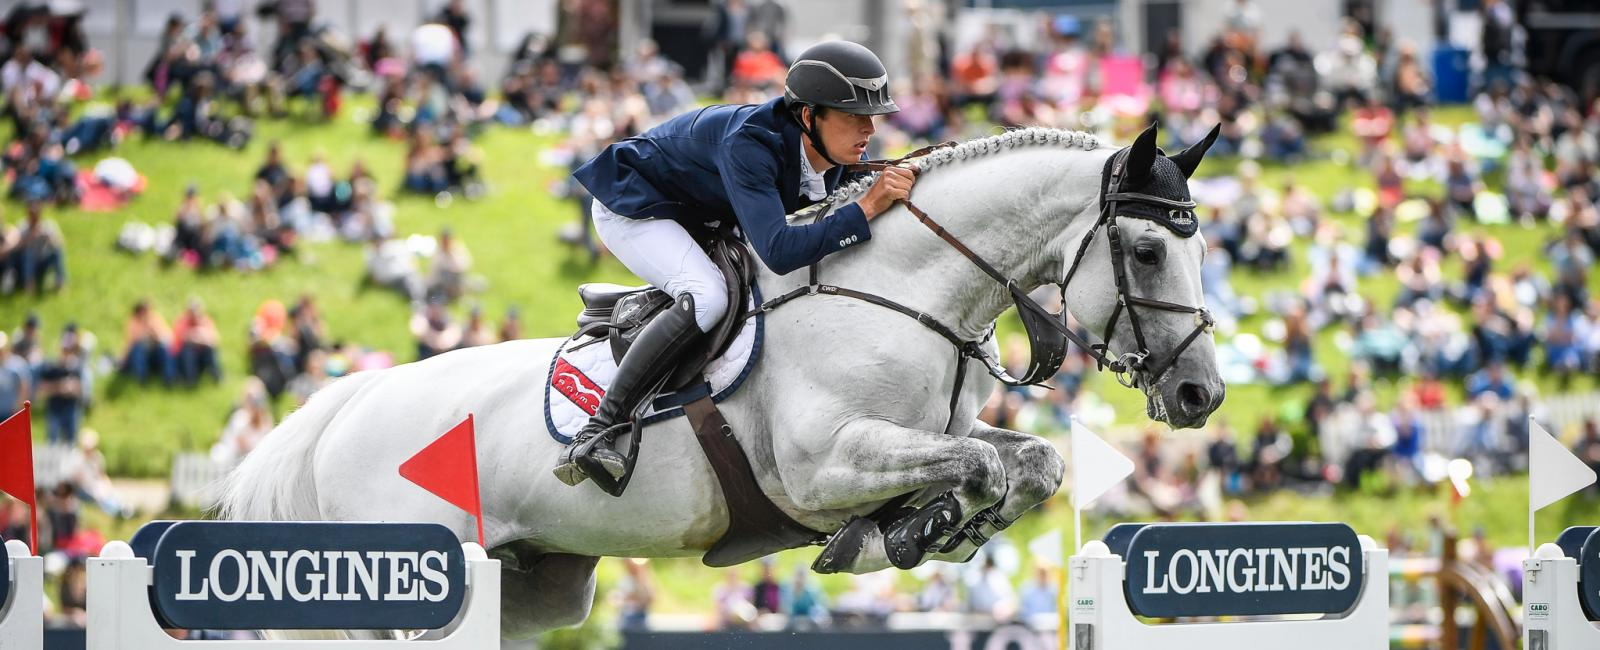 FEI Nations Cup - Division 1 - Longines CSIO Schweiz St-Gallen; Jumping; 2017